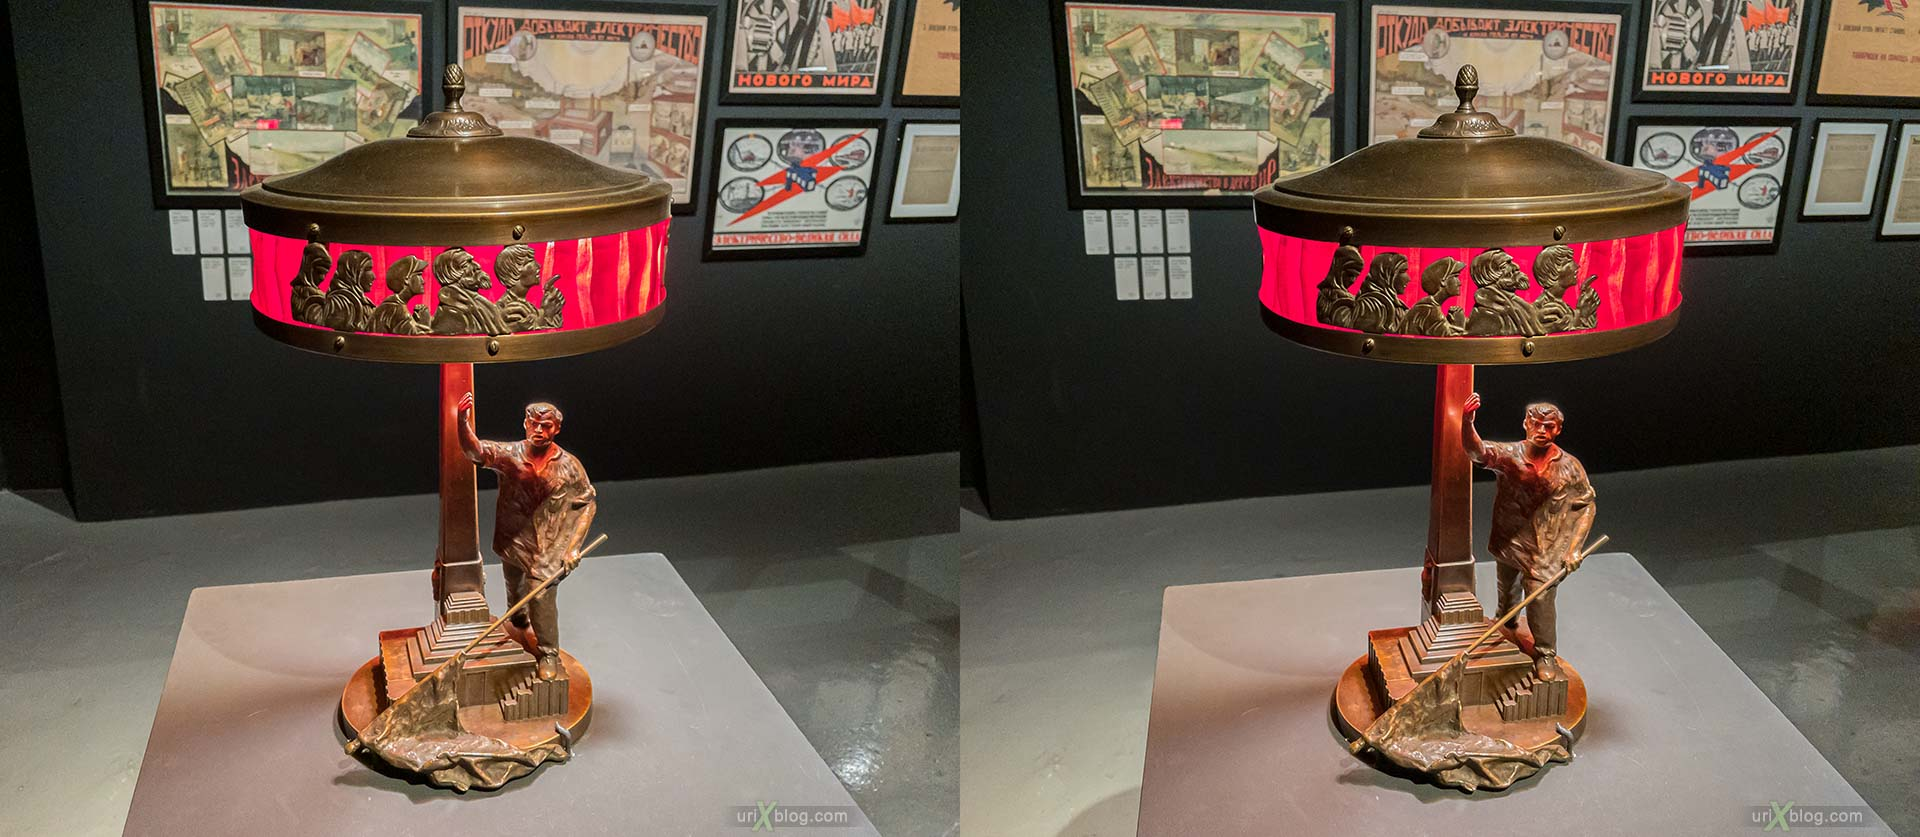 USSR, soviet, lamp, electrification, worker, statuette, Moscow, Russia, Museum of Moscow, 3D, stereo pair, cross-eyed, crossview, cross view stereo pair, stereoscopic